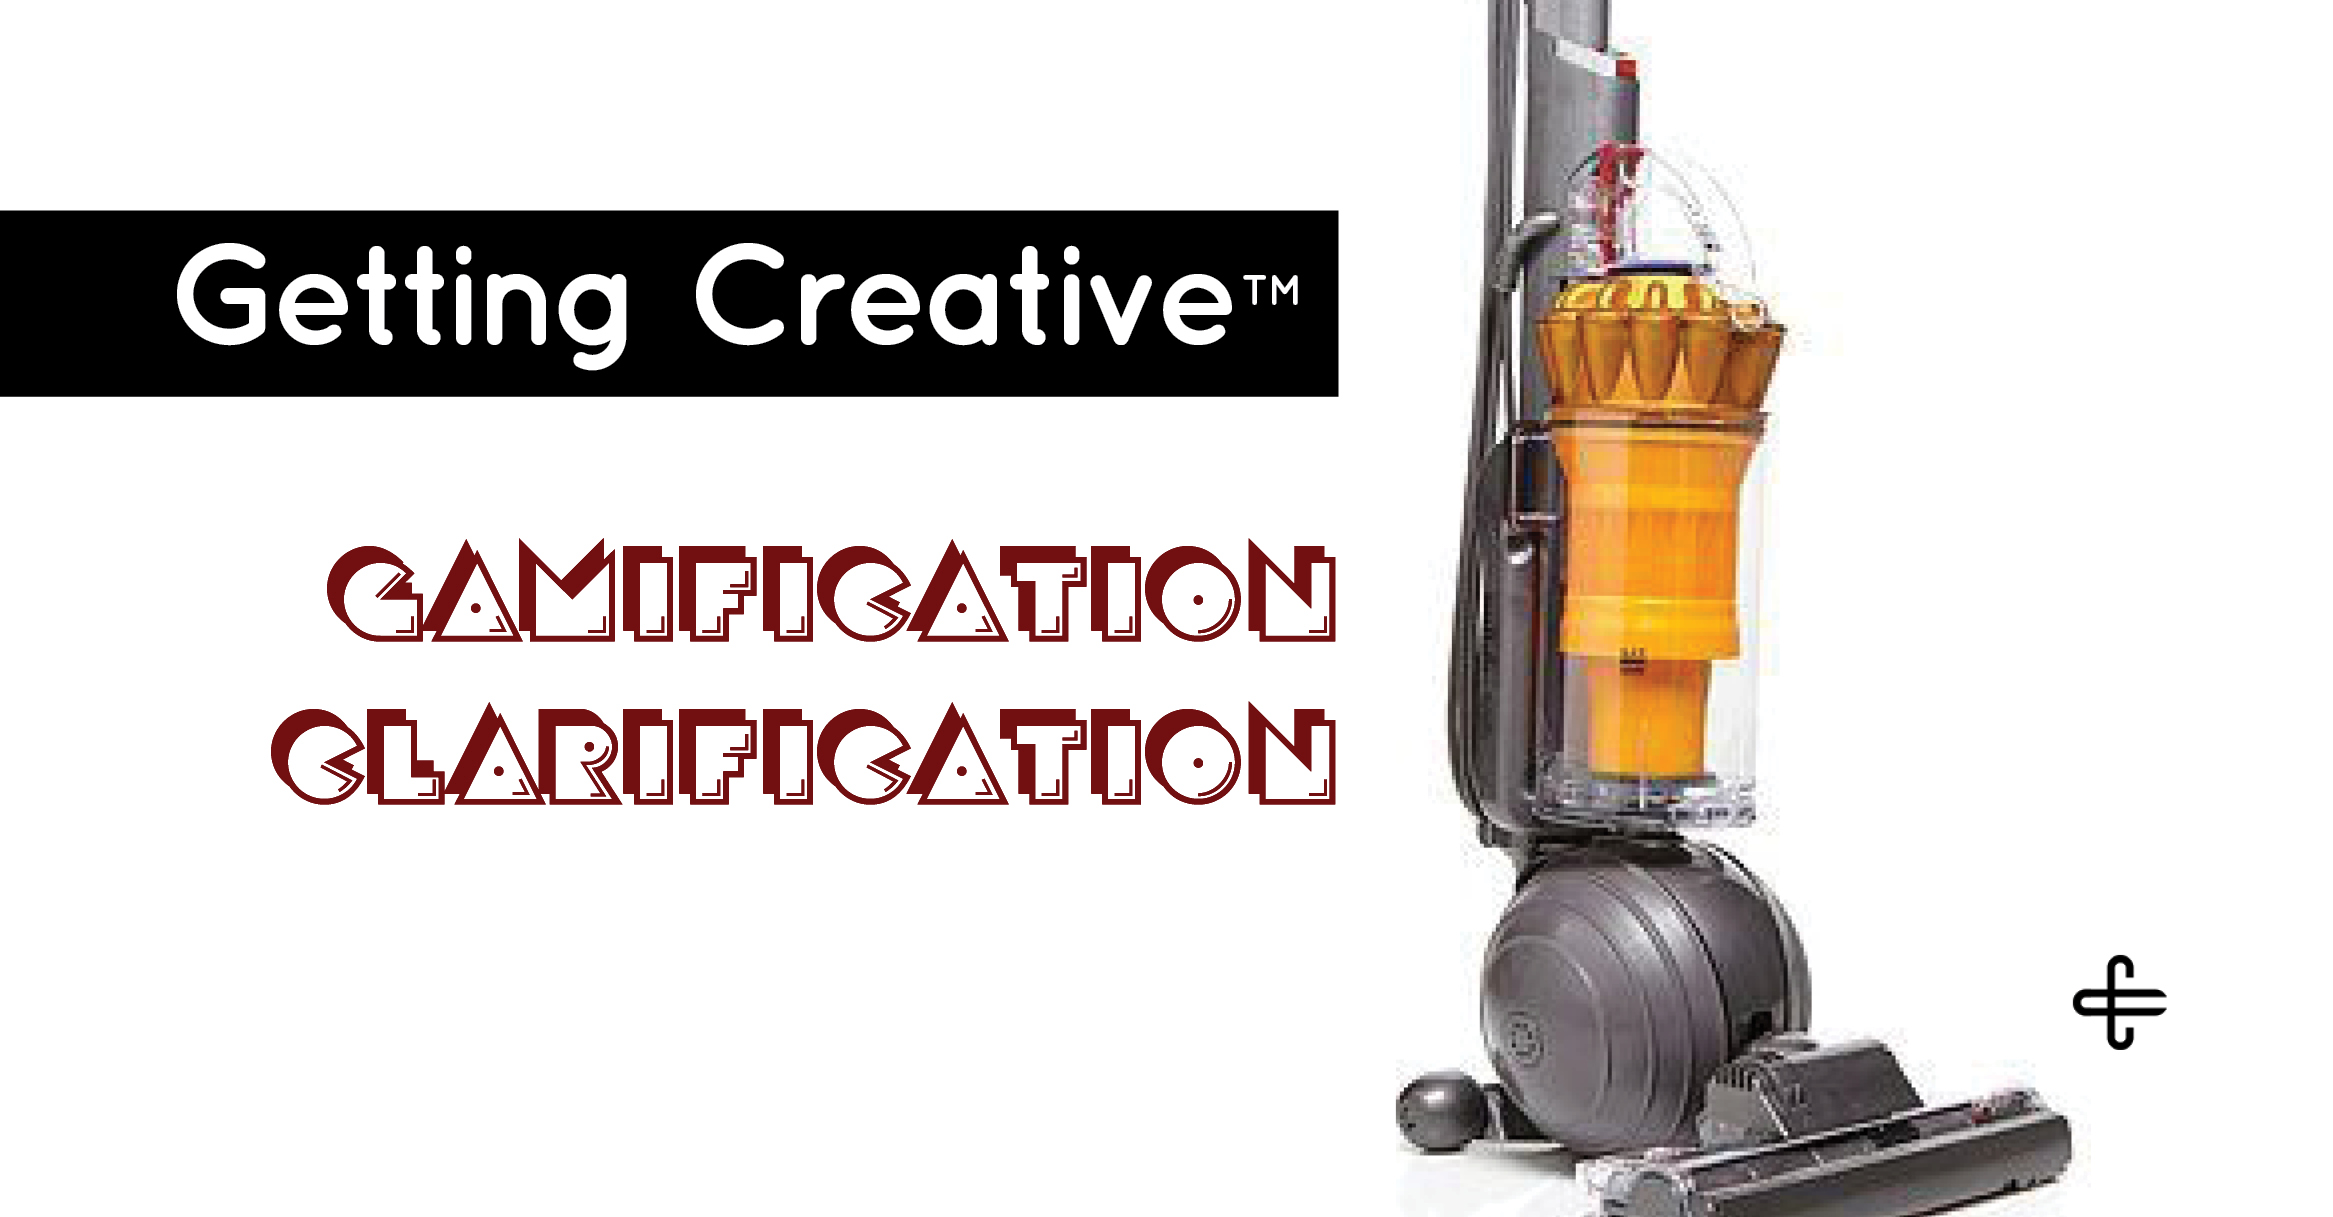 Getting-Creative-Gamification-Clarification-Blog-Post-by-D.P.-Knudten-Collaborator-Creative